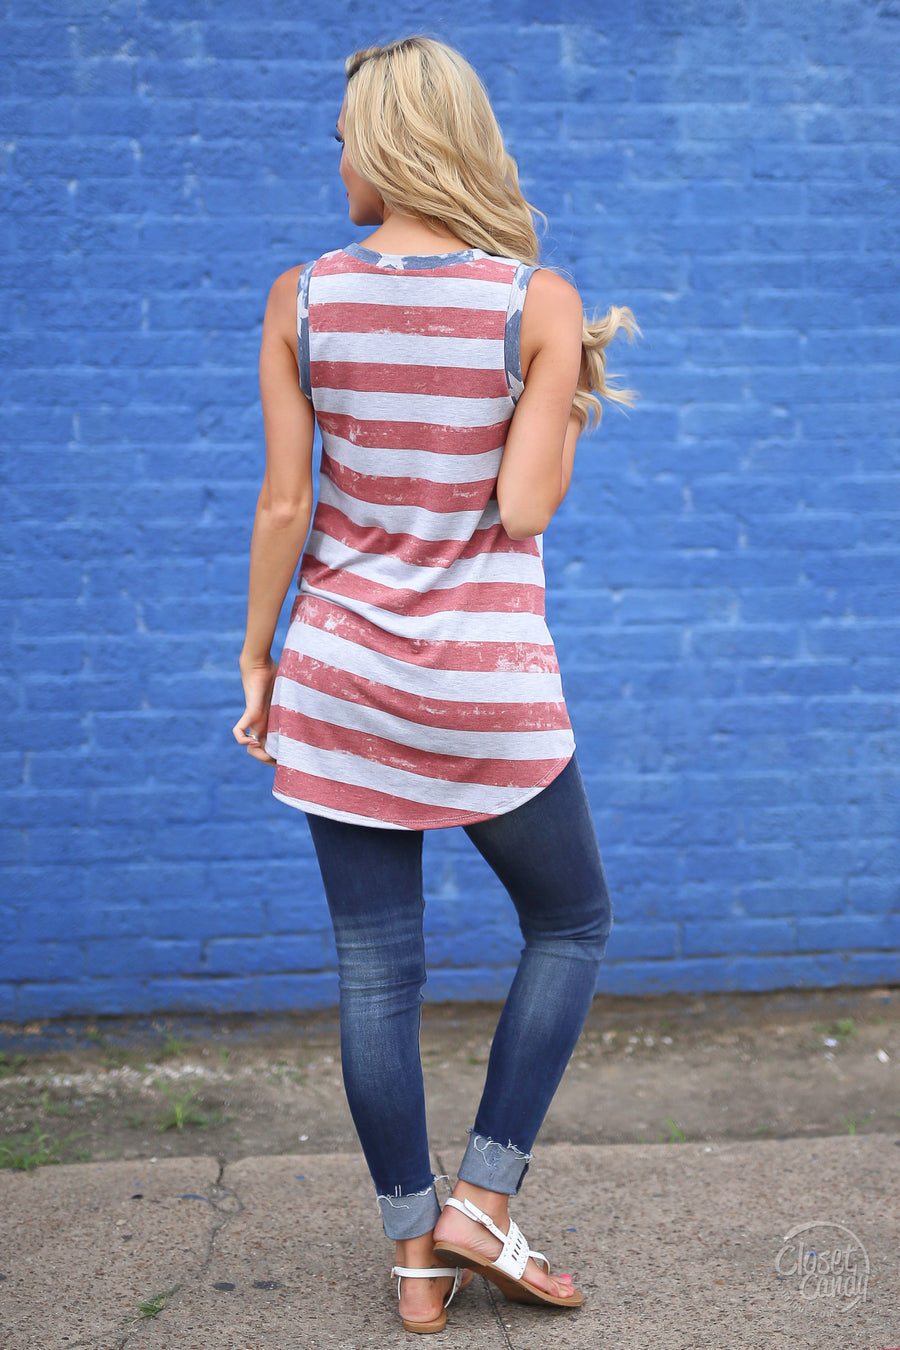 Closet Candy Boutique - red white and blue American flag print tank top for July 4th